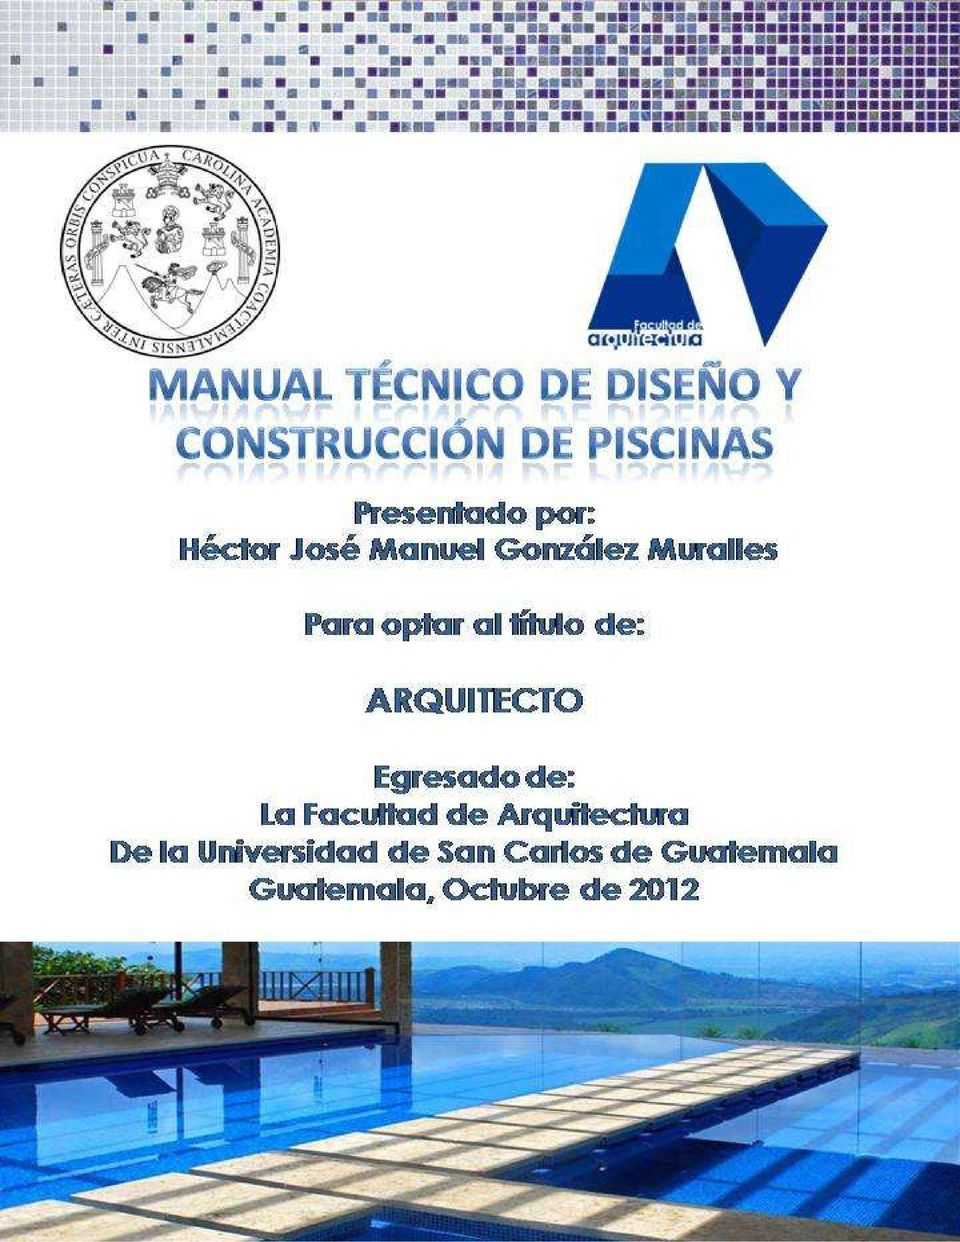 Manual De Construccion De Piscinas Pdf Of Manual T Cnico De Dise O Y Construcci N De Piscinas